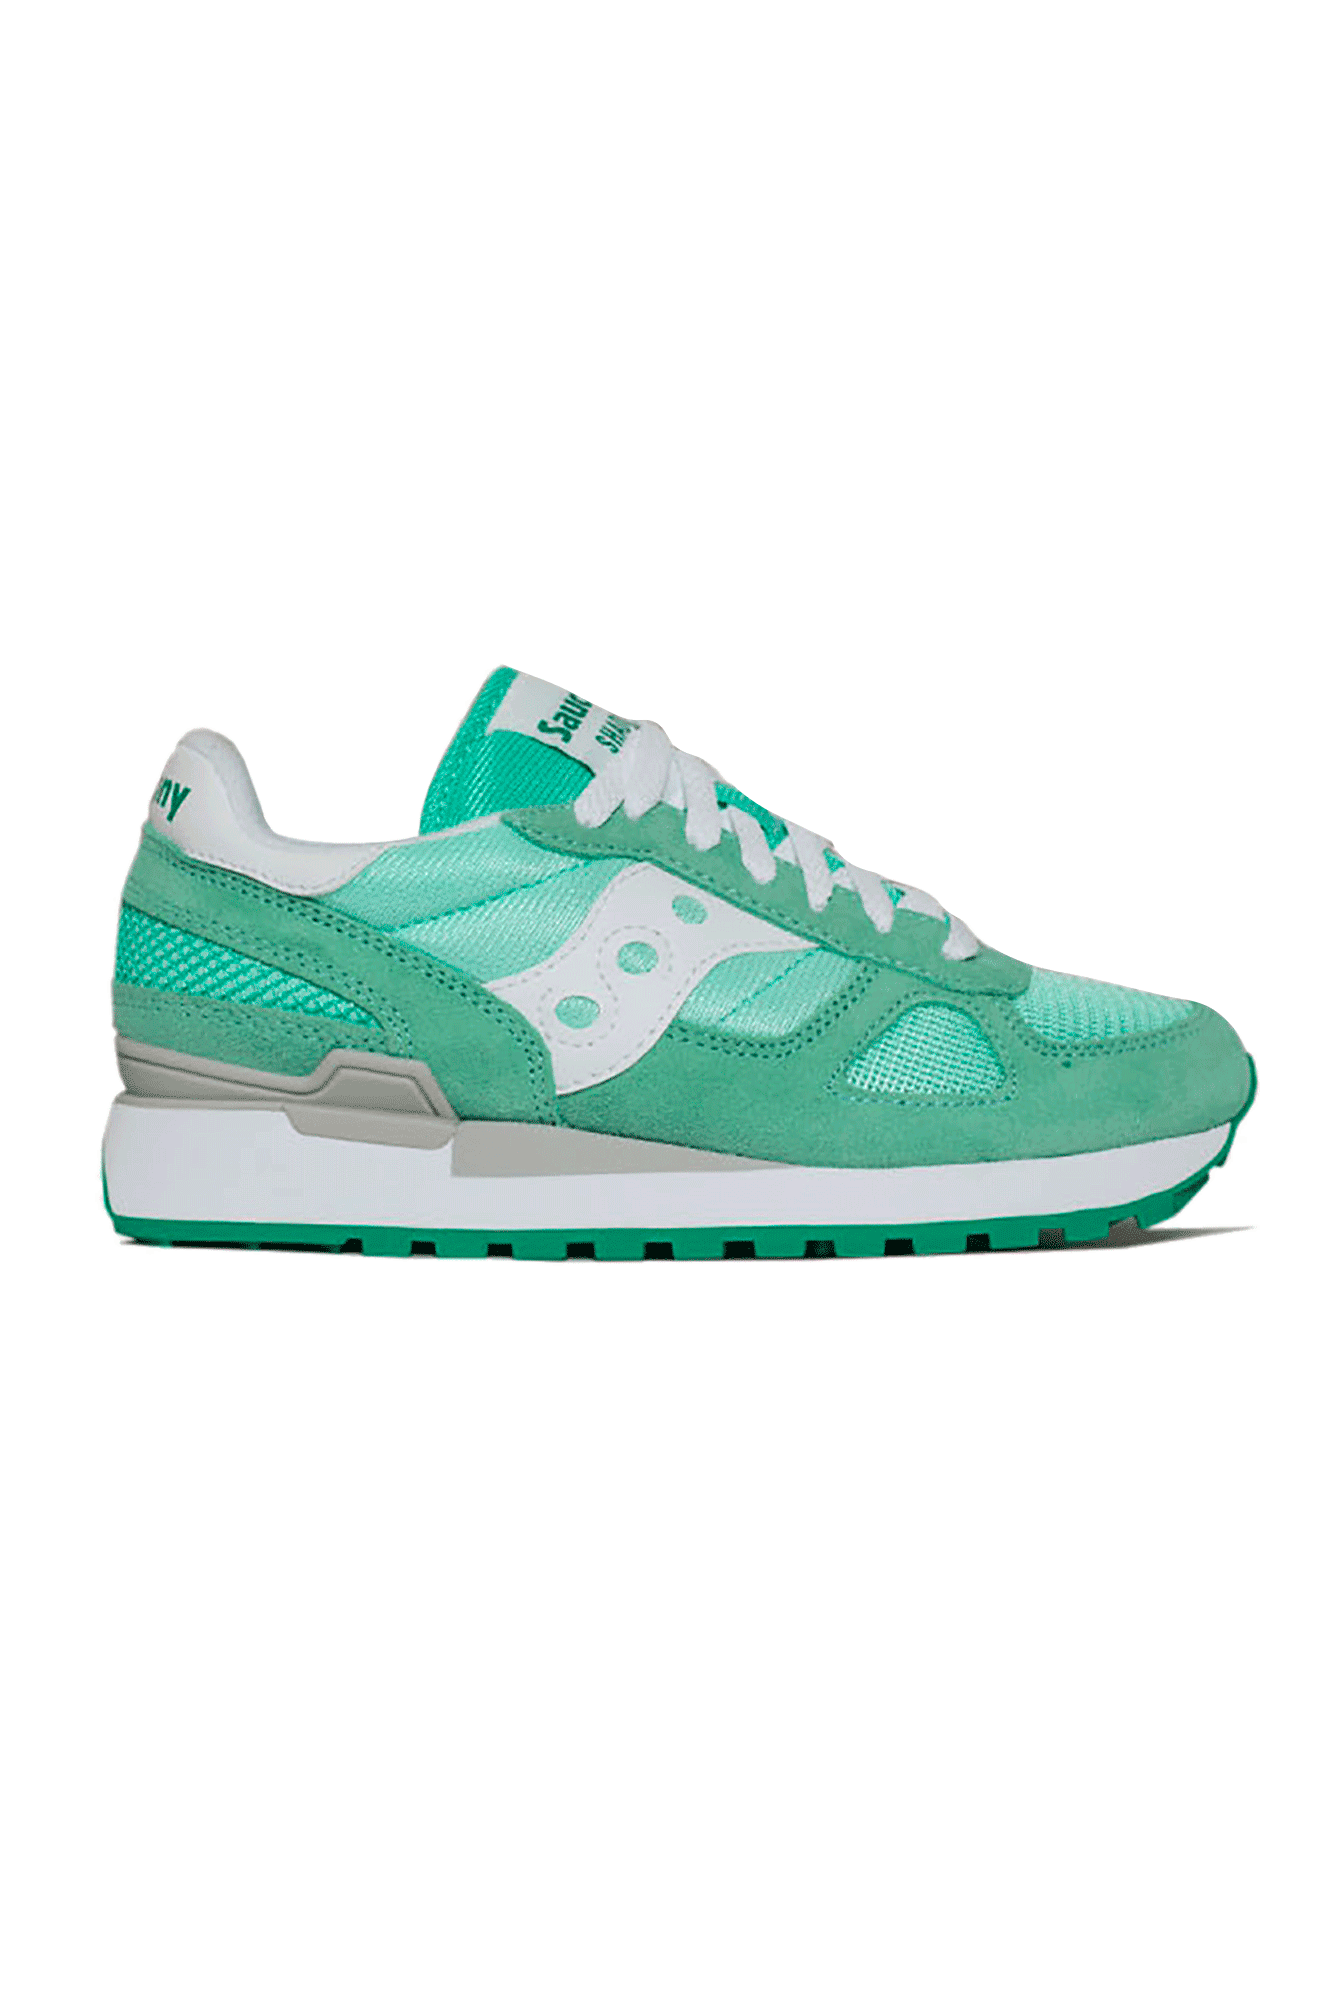 Saucony Sneakers Shadow Original W Green 1108621#000#C0013#7 - One Block Down